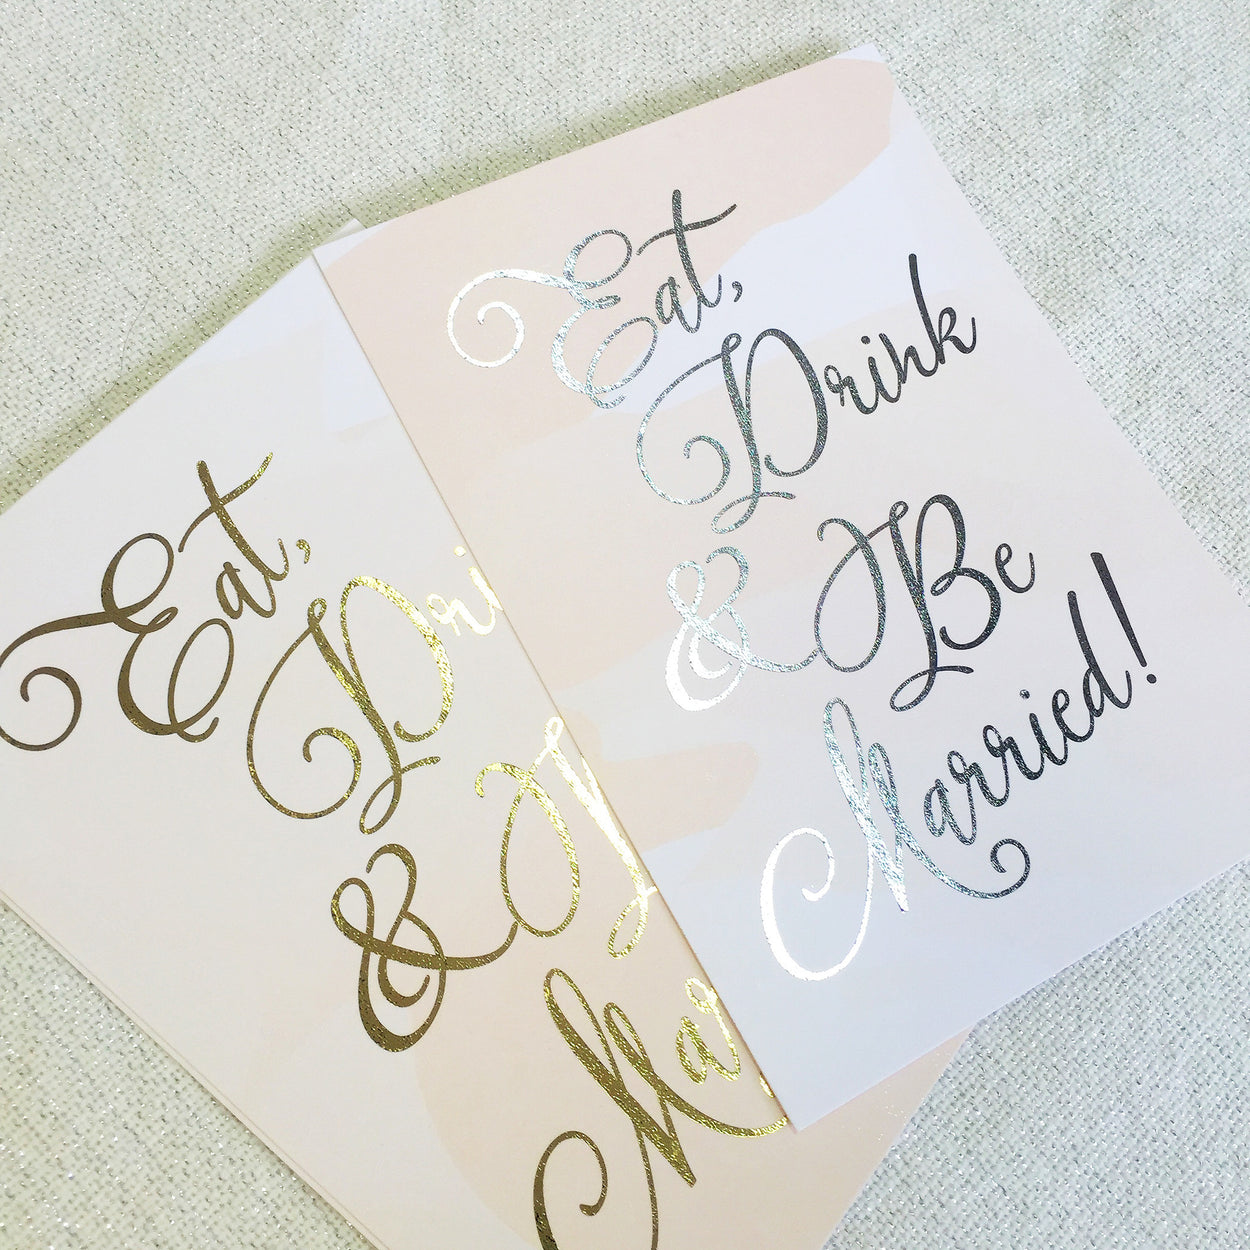 Eat Drink & Be Married Wedding Sign | Gold Foil - shop greeting cards, handmade stationery, & wedding invitations by dodeline design - 3